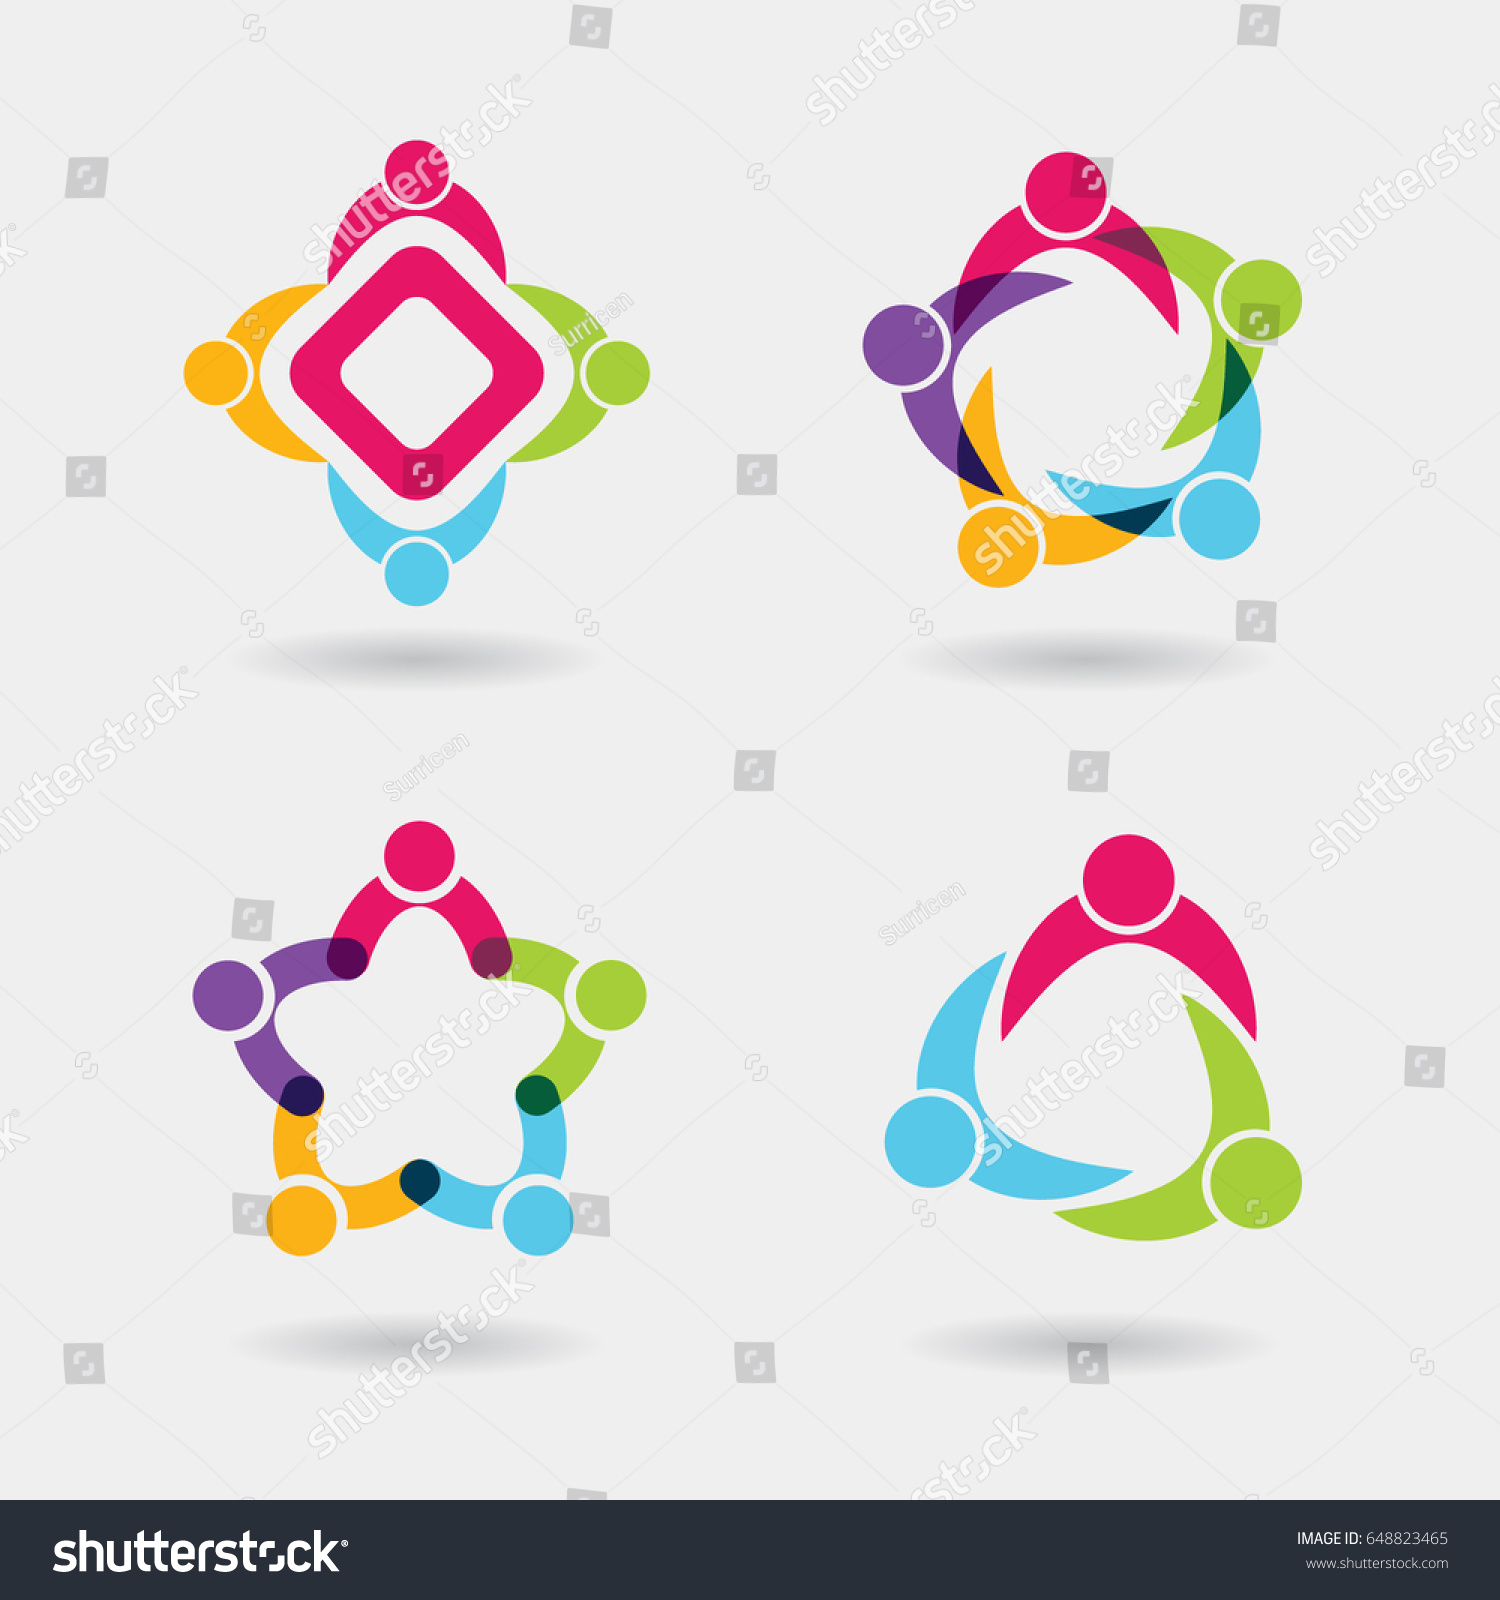 Vector Social Logo Icons People Together Stock Vector ...